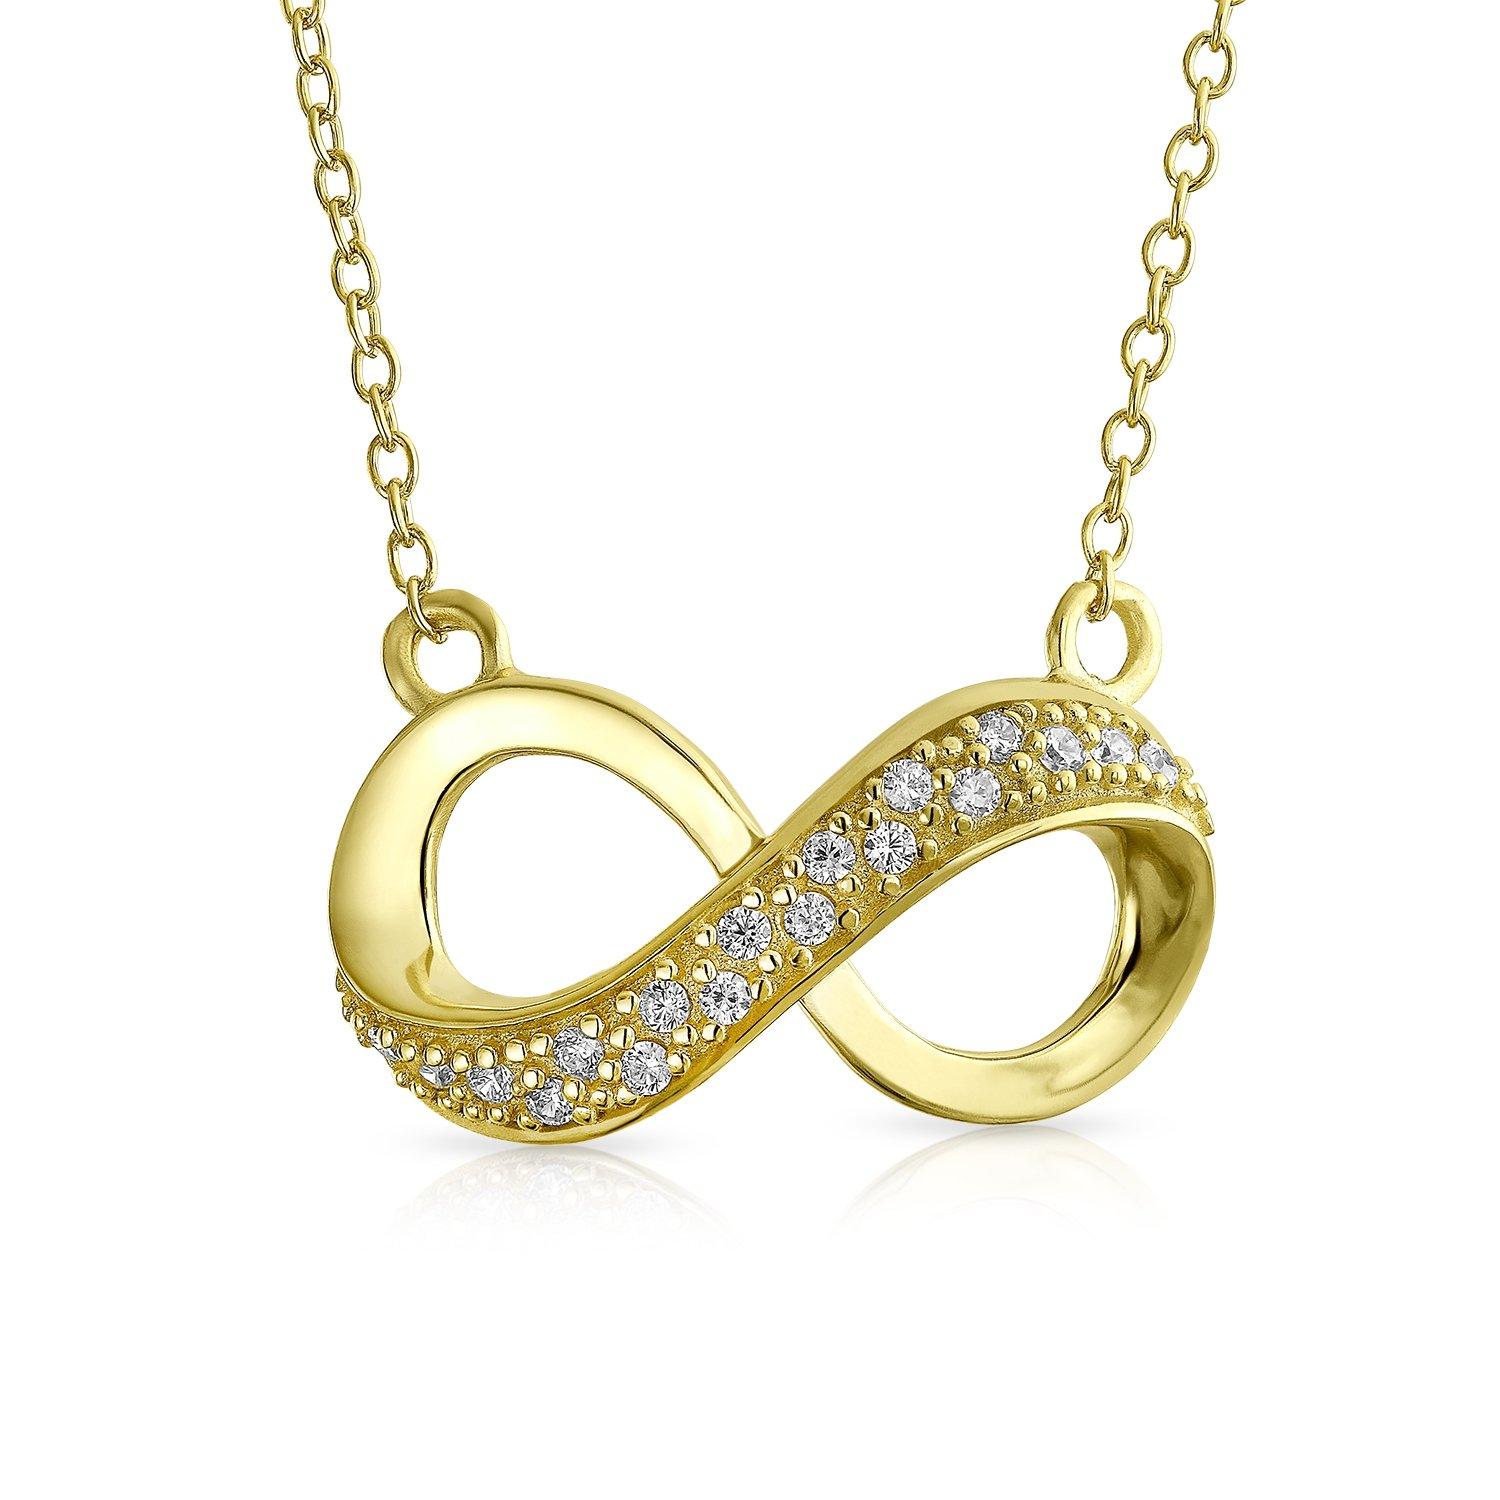 Cubic Zirconia Infinity Forever Love Pendant Necklace For Women Girlfriend 14K Gold Plated 925 Sterling Silver